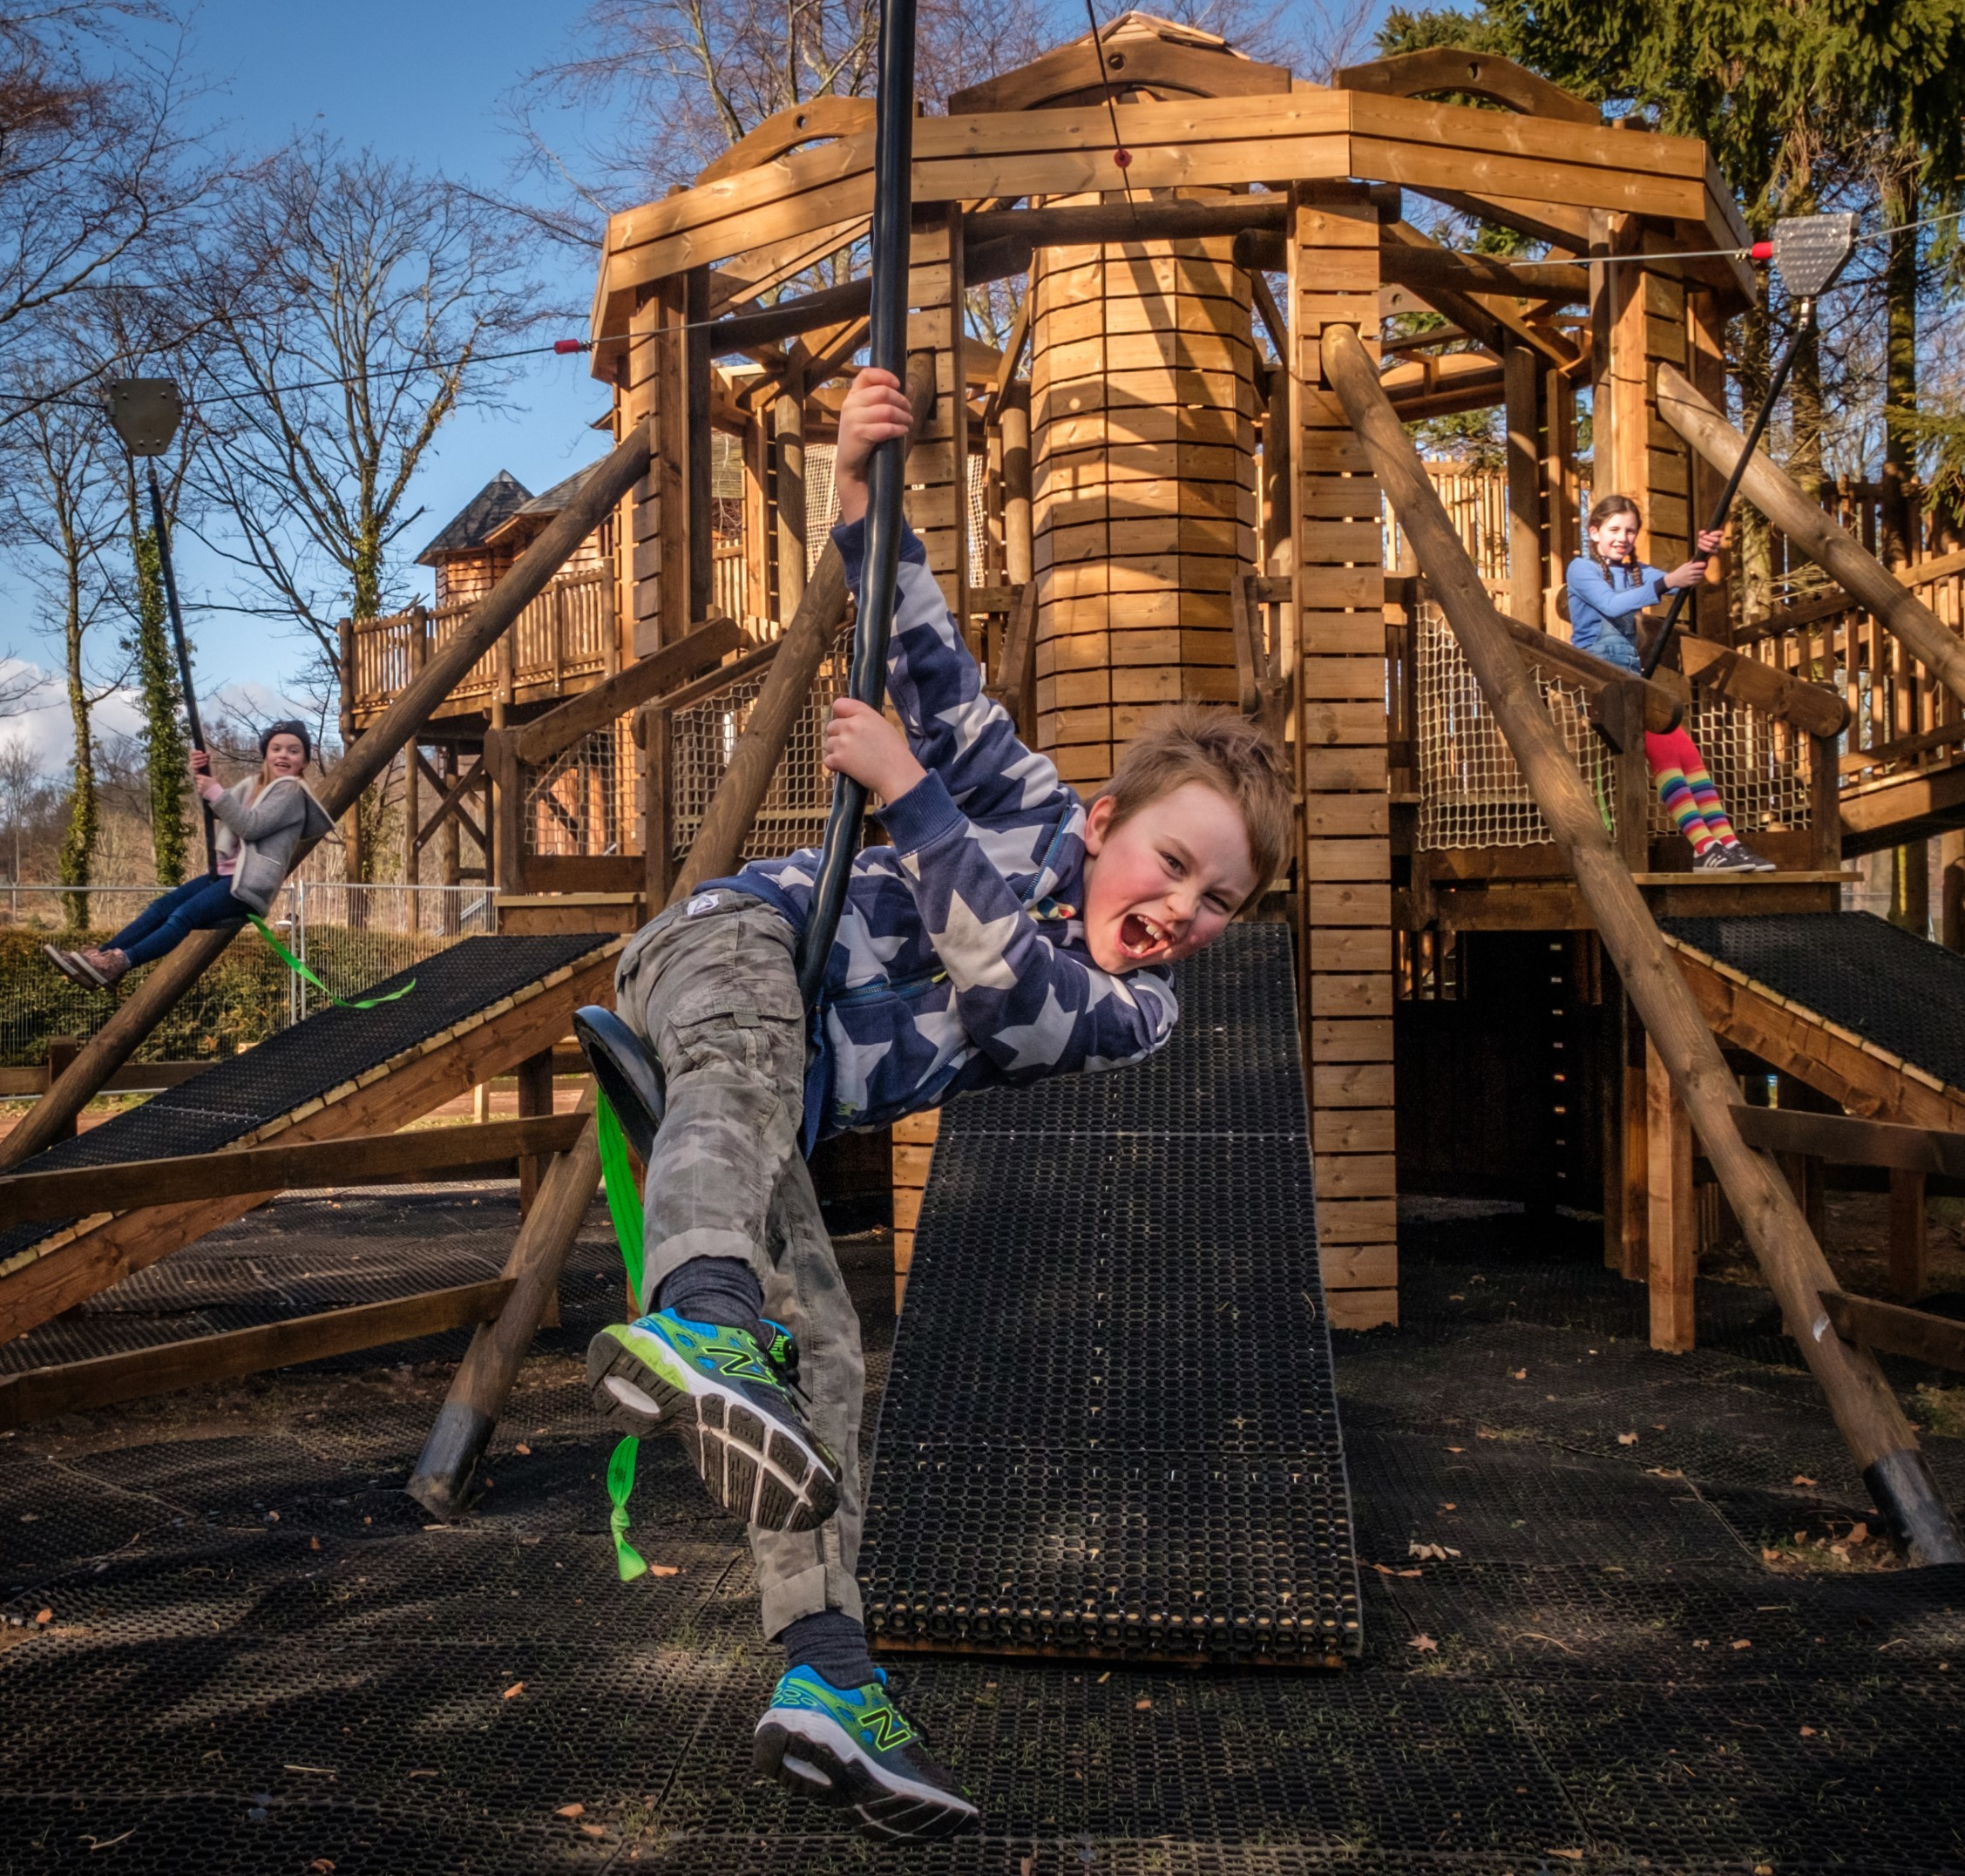 dalkeith country park scotland kid kids swing play